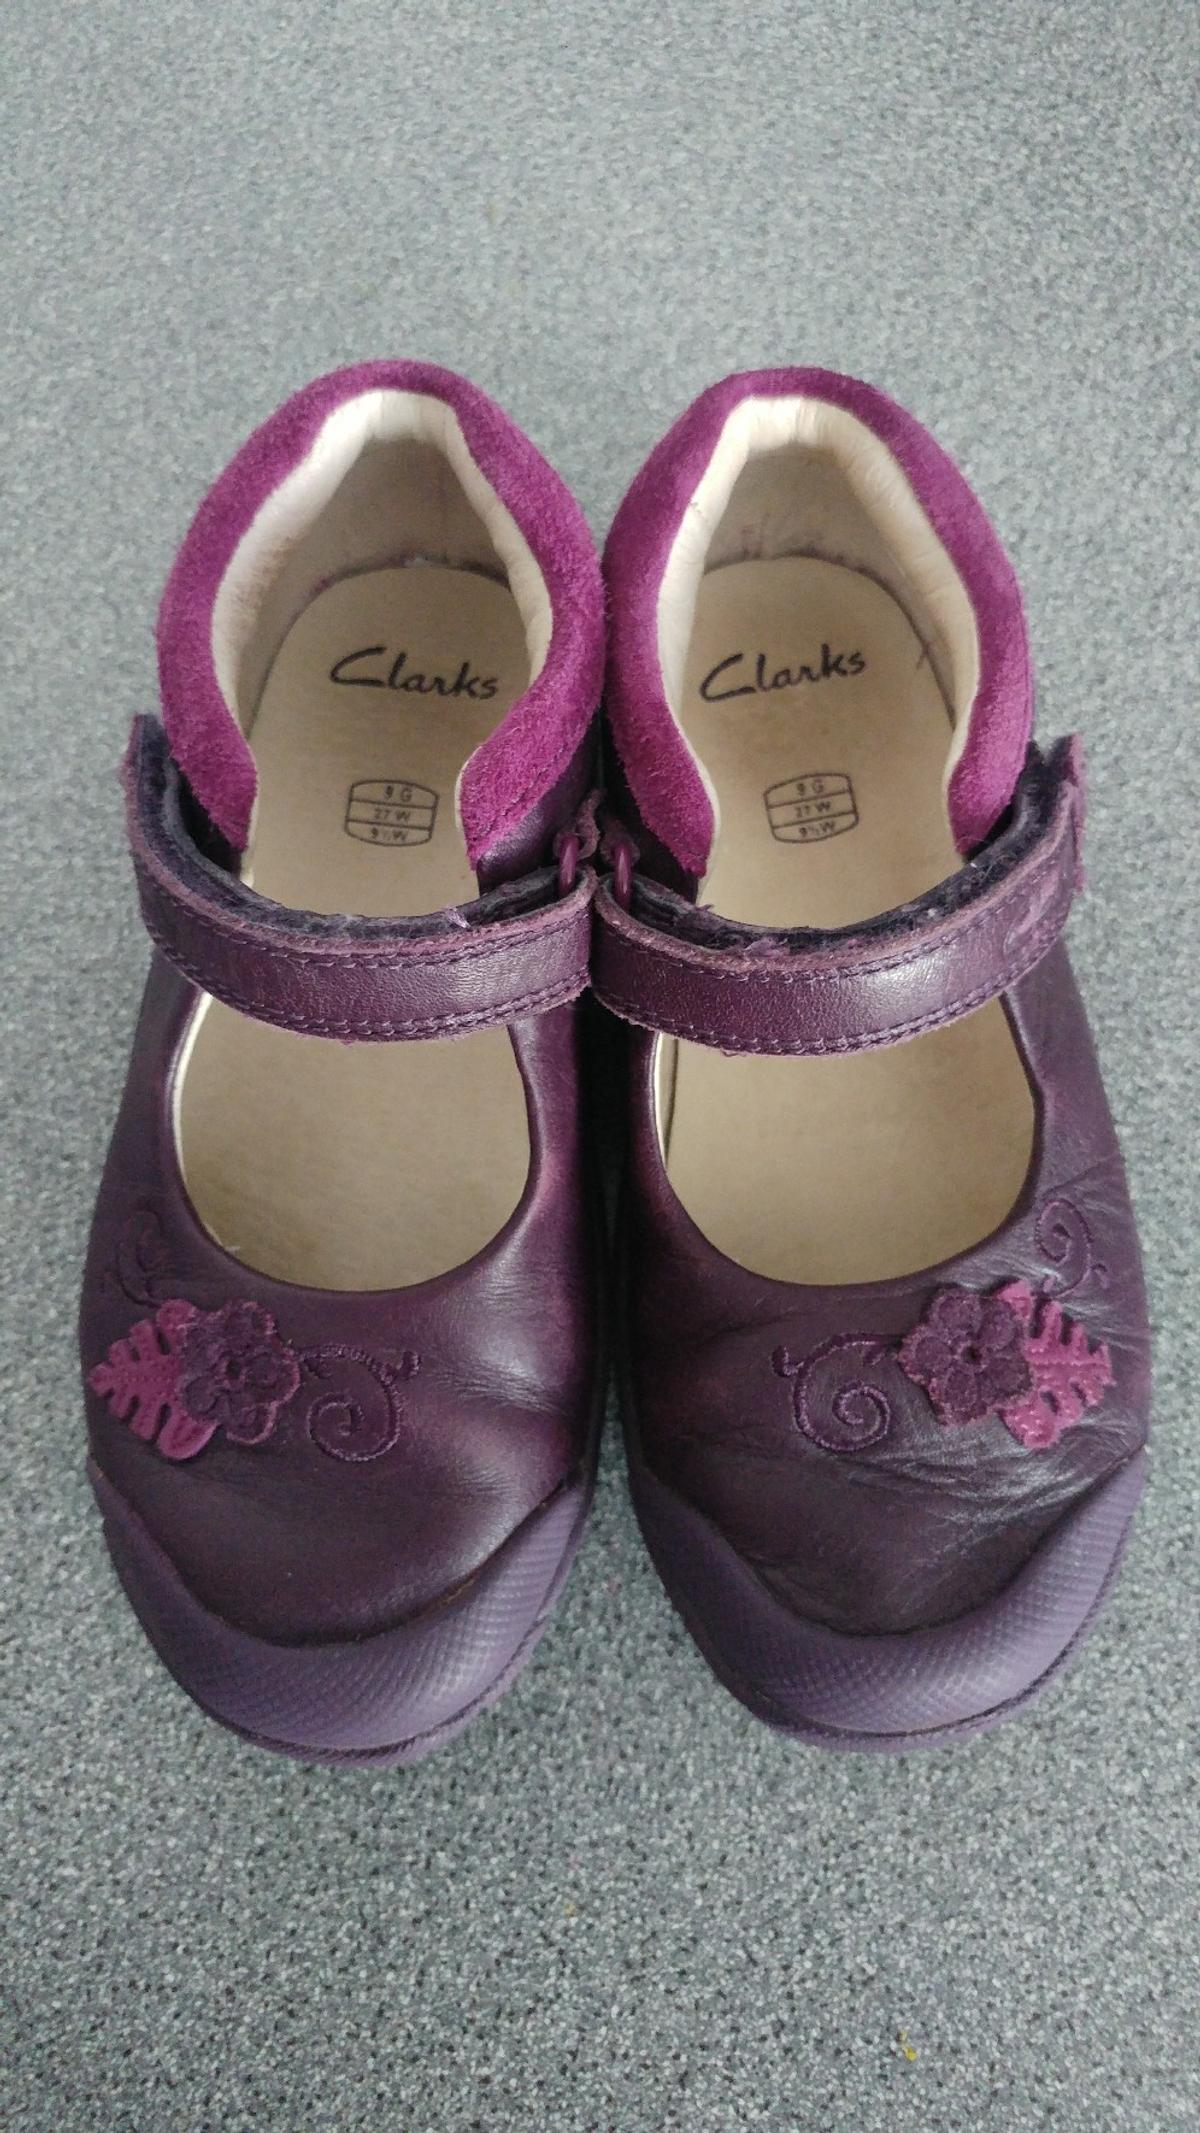 19336669 Girls Clarks shoes size 9F Plum purple colou in Oldham for £6.00 for ...